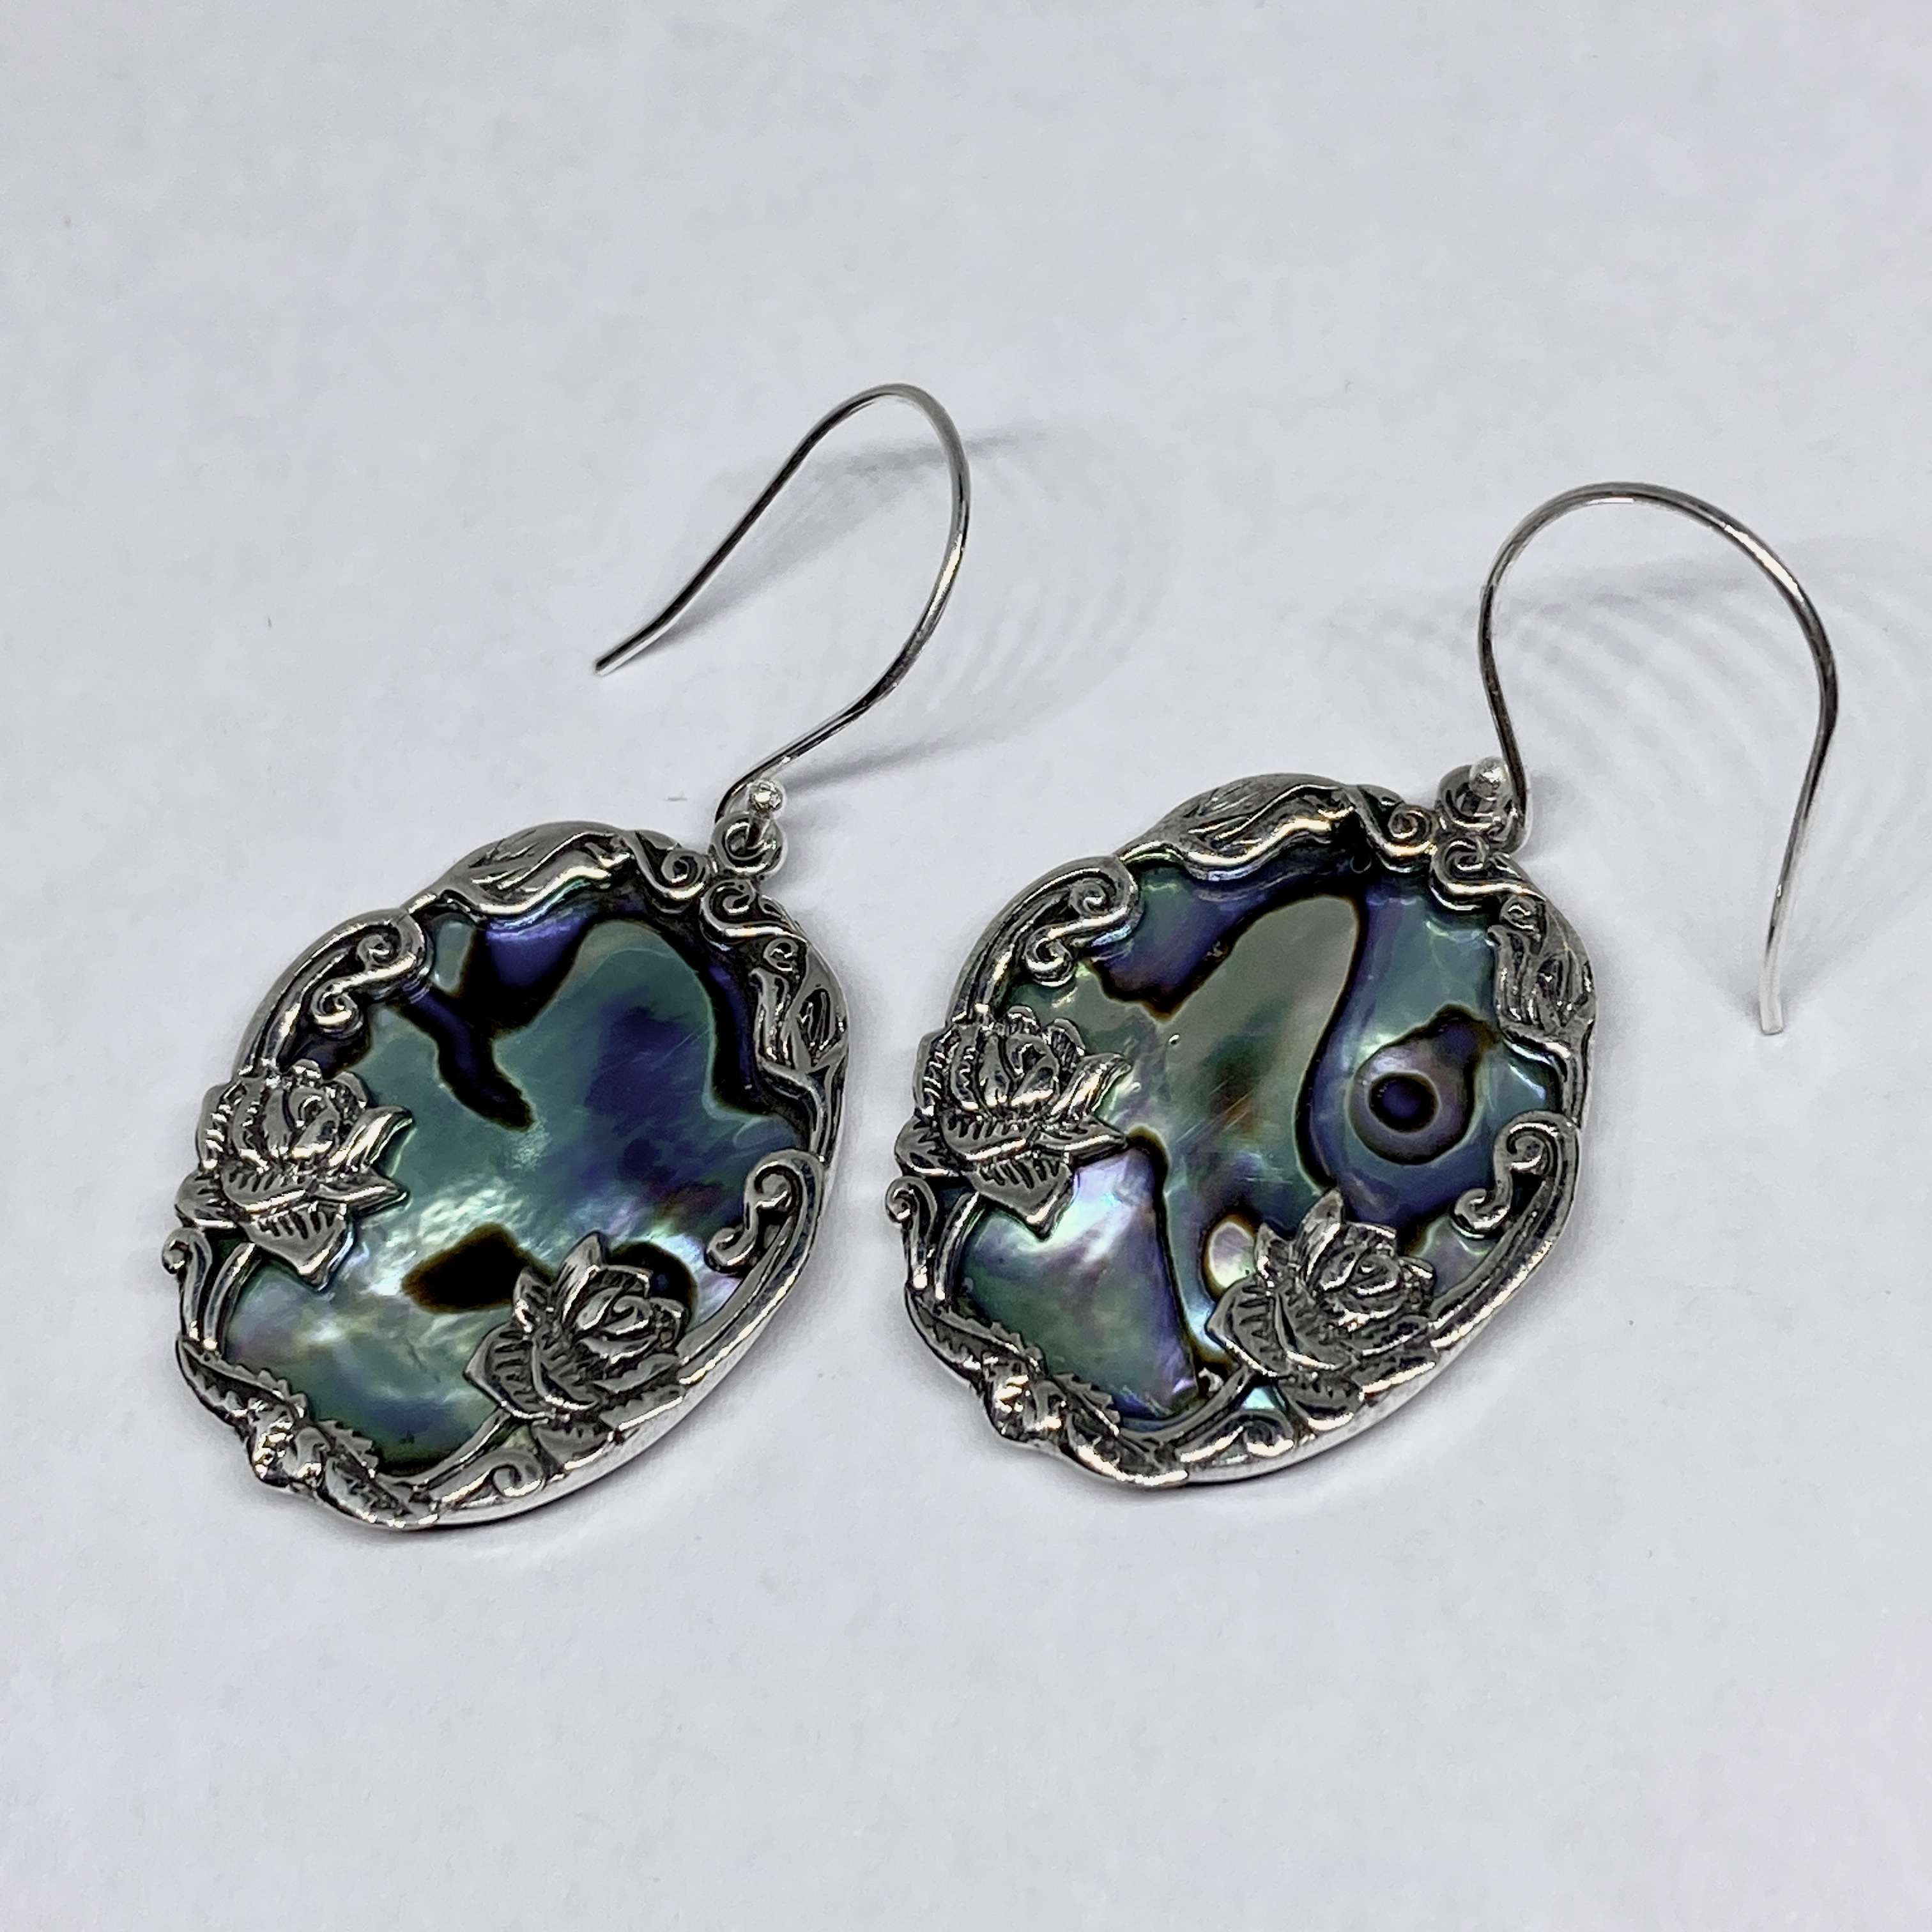 ( HANDMADE 925 BALI SILVER DAISY LOTUS EARRINGS WITH  ABALONE)